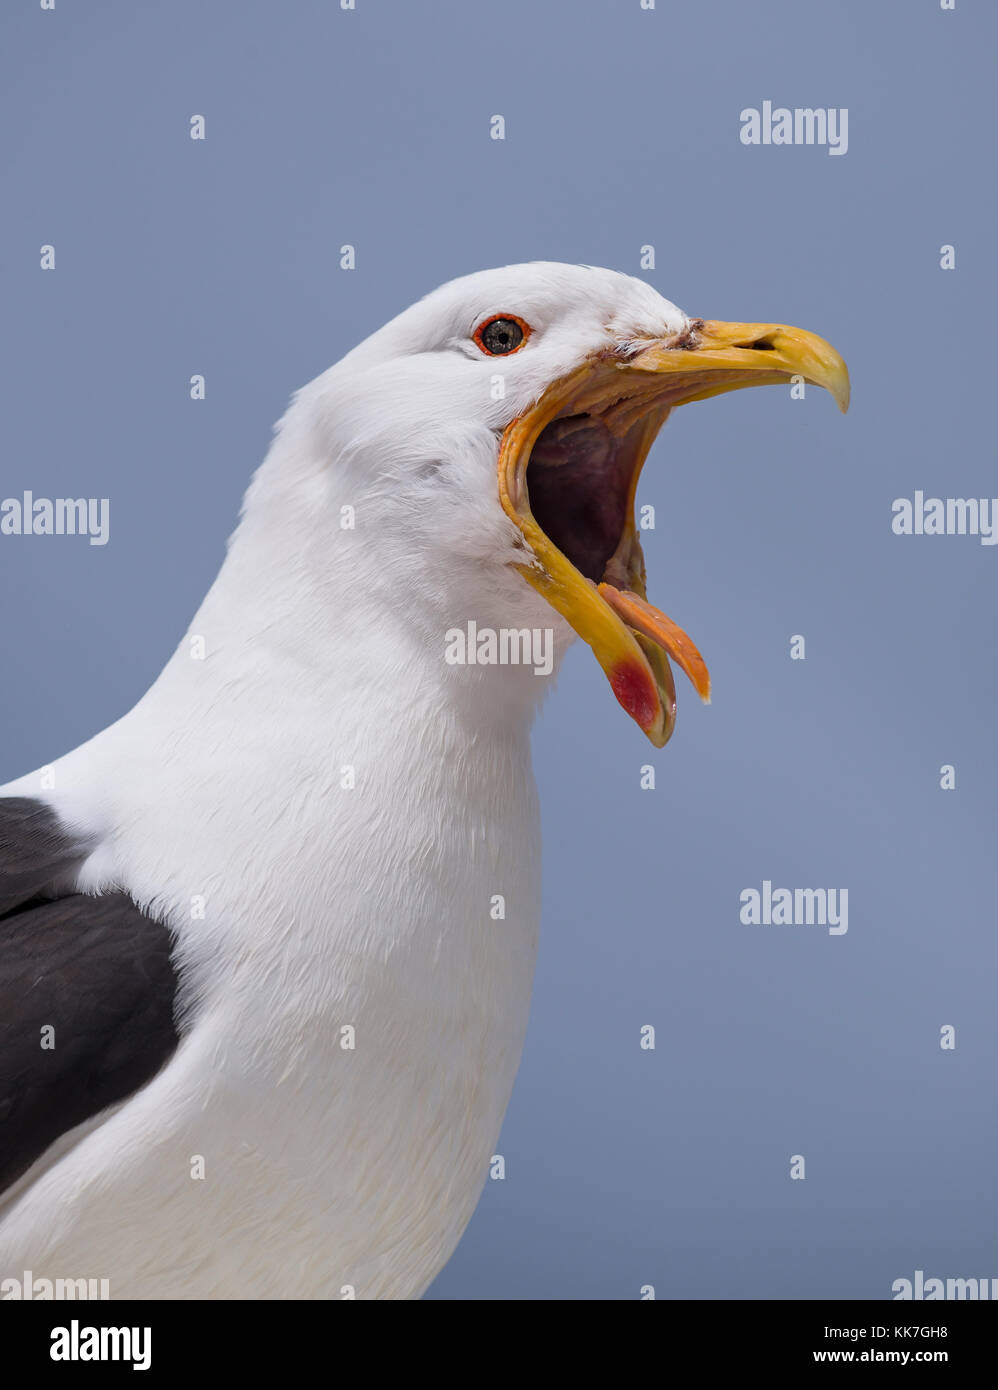 Kelp Gull (Larus dominicanus) from Punta Arenas, Chile - Stock Image